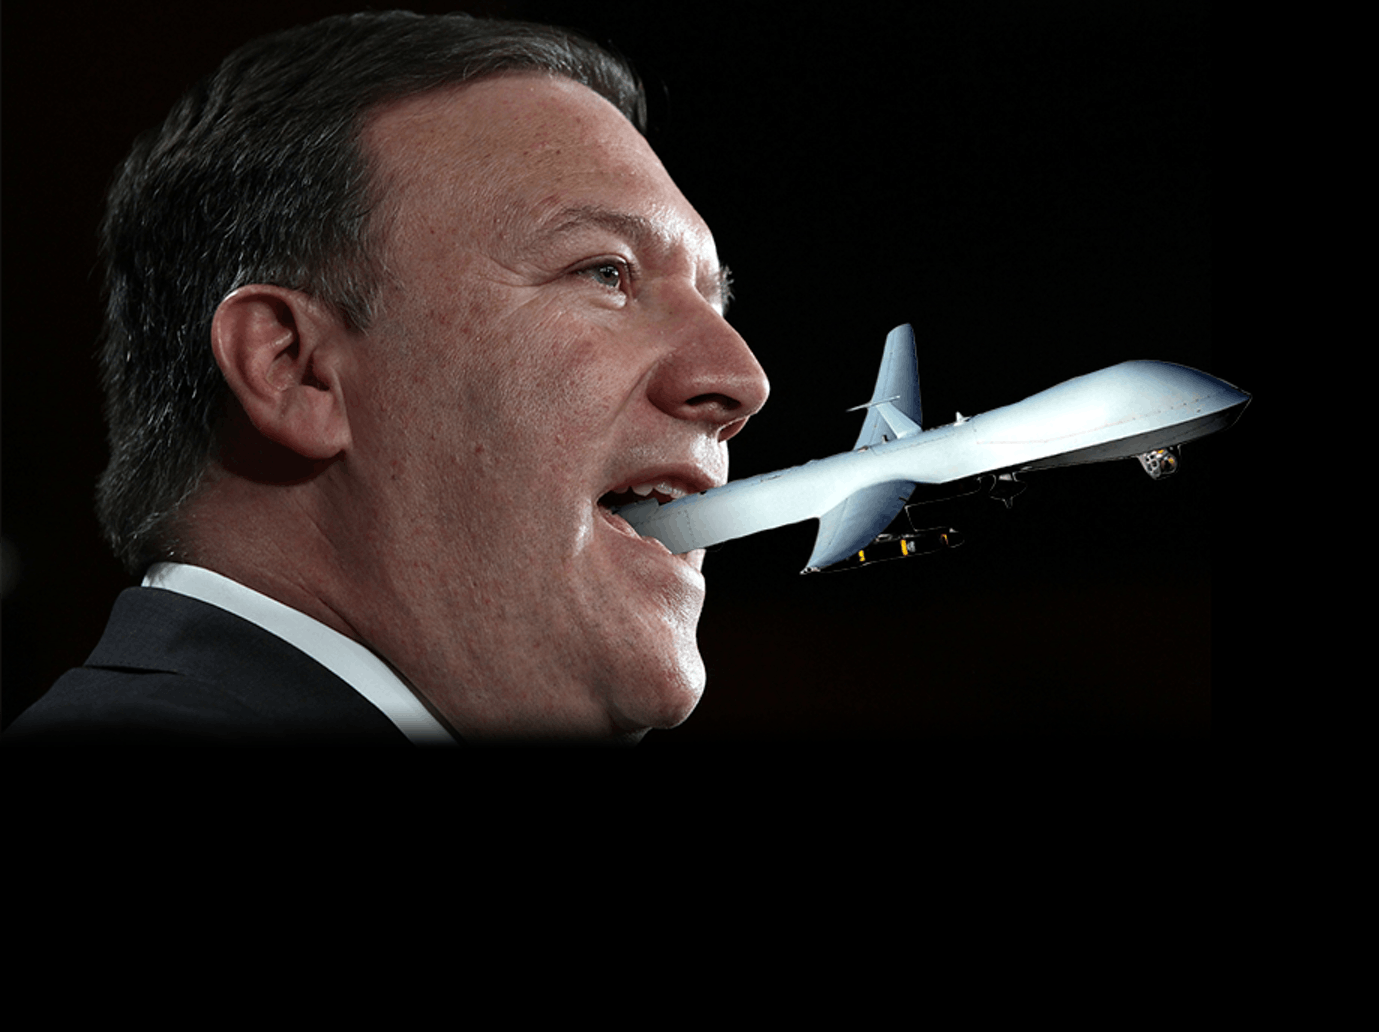 Mike Pompeo of Kansas could be Donald Trump's new CIA director, putting him in a great position to put his money where his mouth is and kill Edward Snowden.